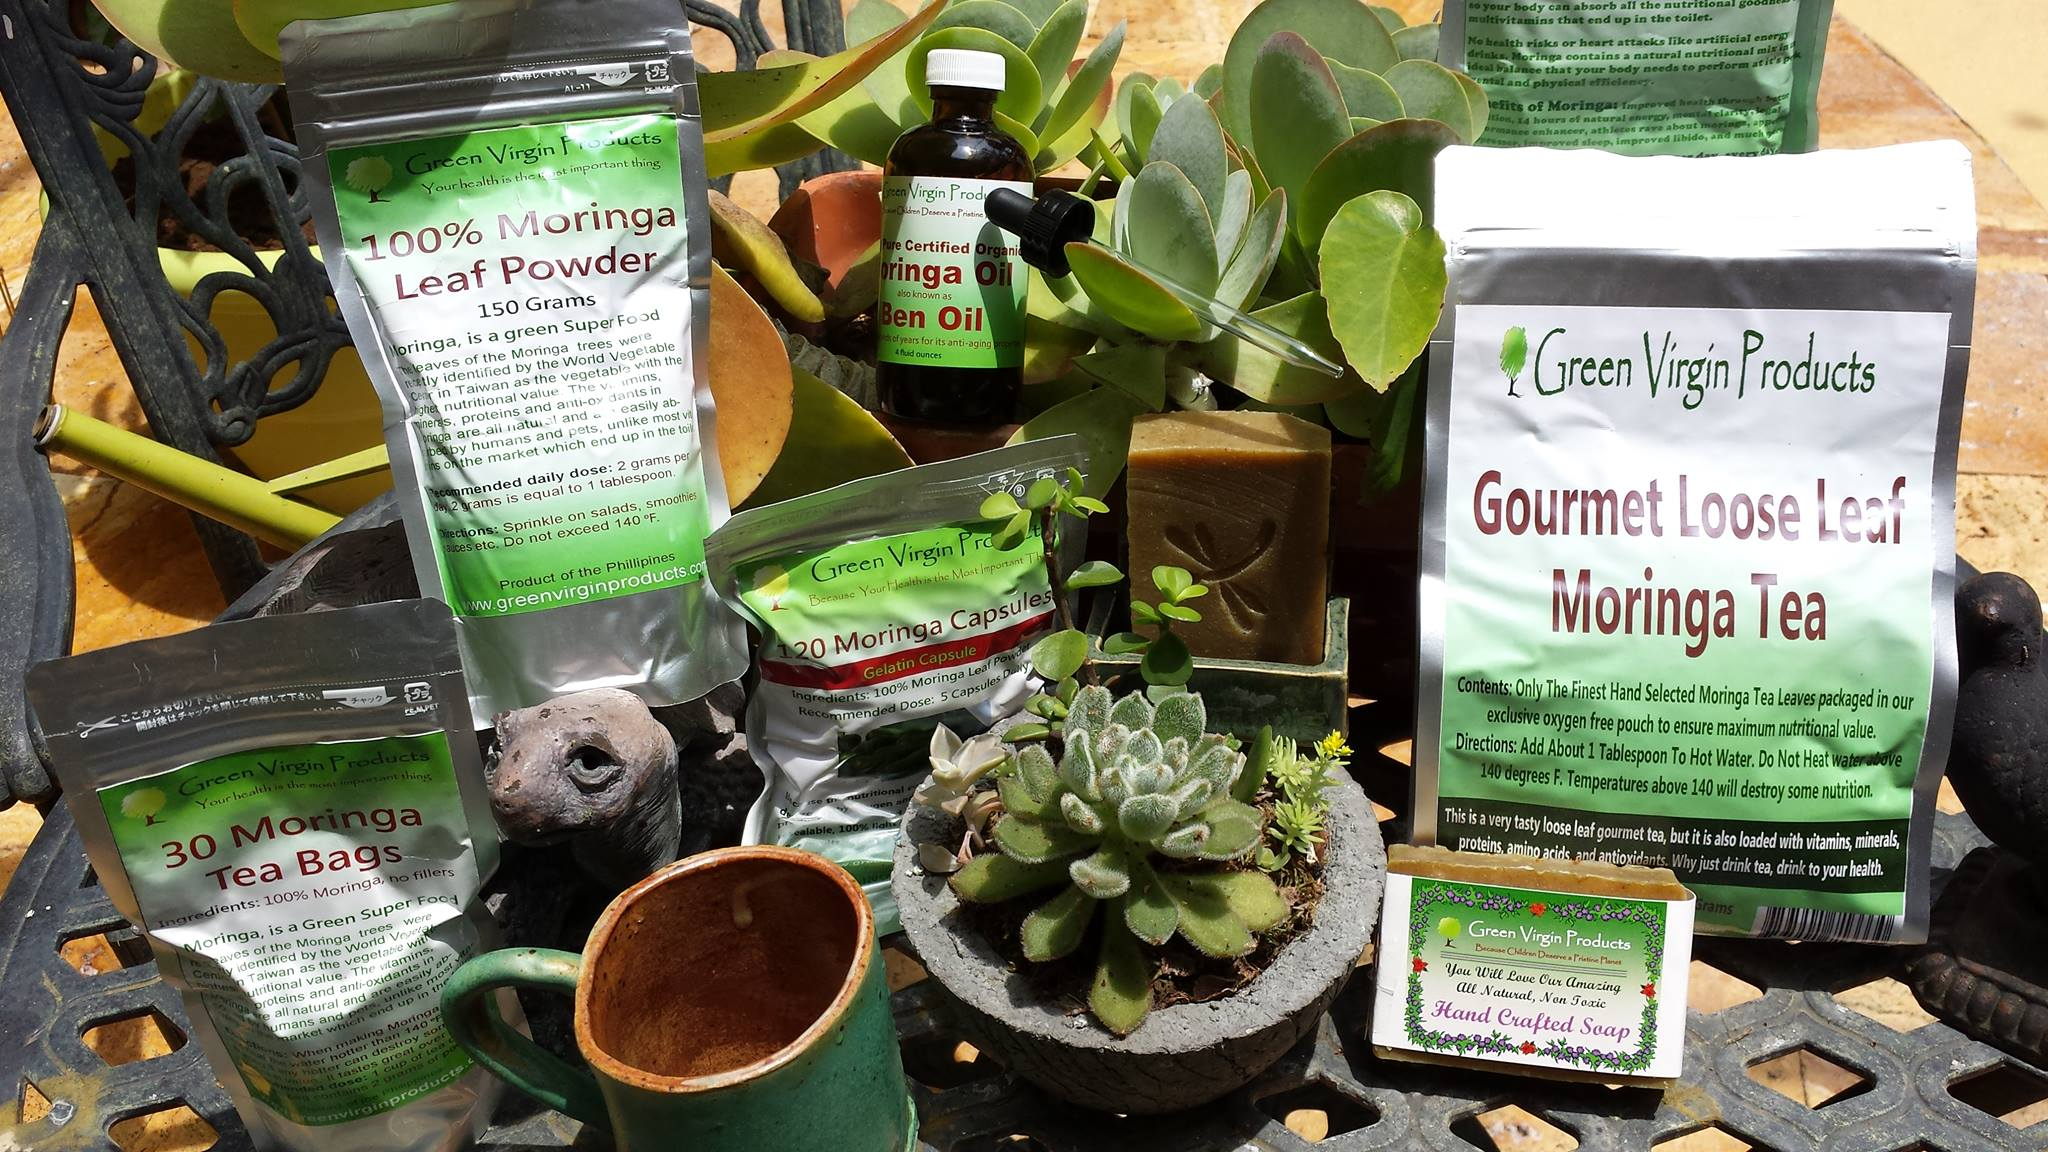 Tea and various health items from Green Virgin Products